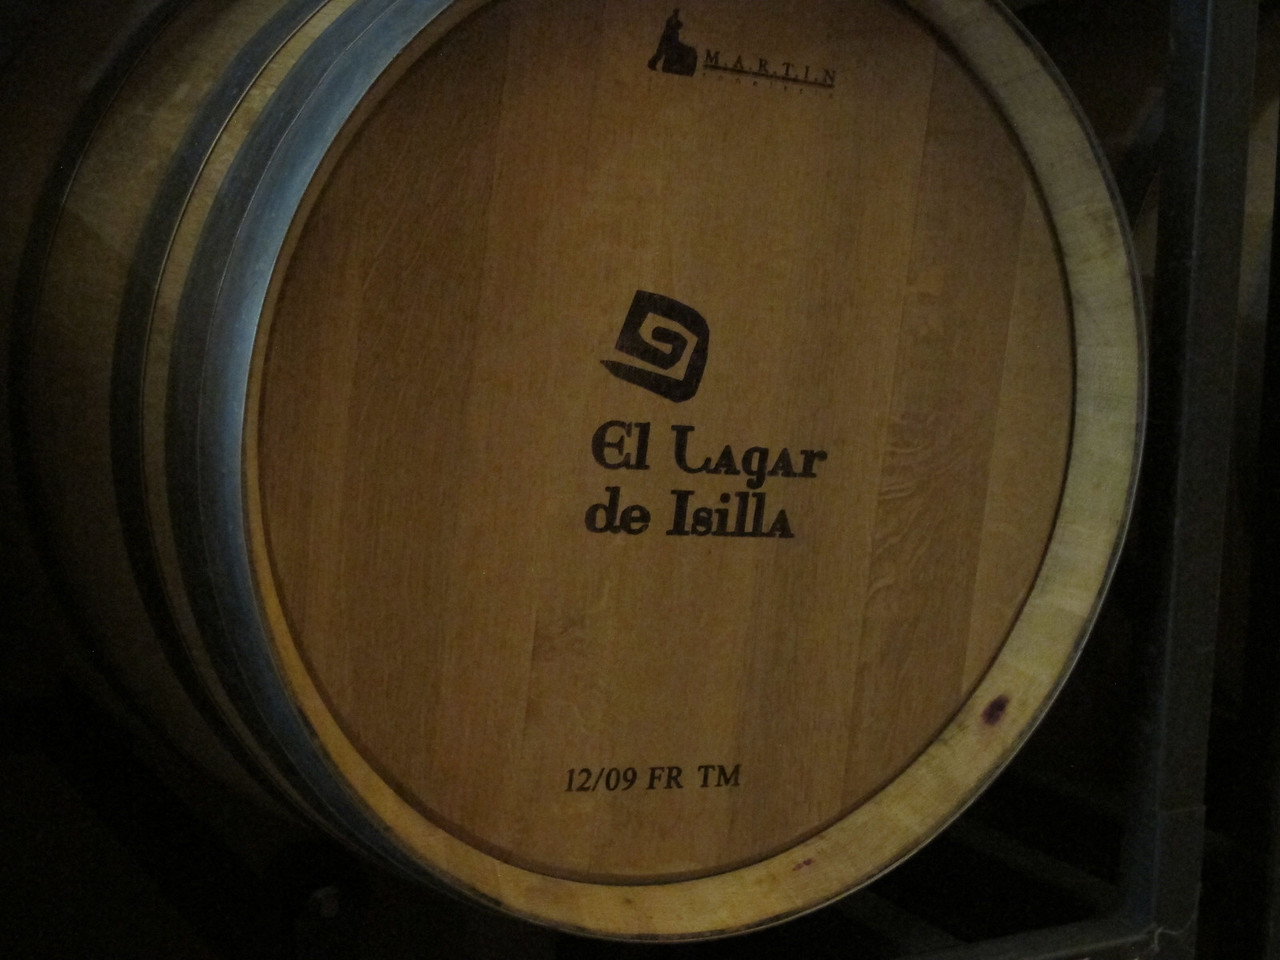 El Lagar de Isilla's wines are aged in 325 barrels, using 50% American Oak and 50% French Oak. By following the date branded on the barrel, it is ensured that they are changed every 3-4 years.